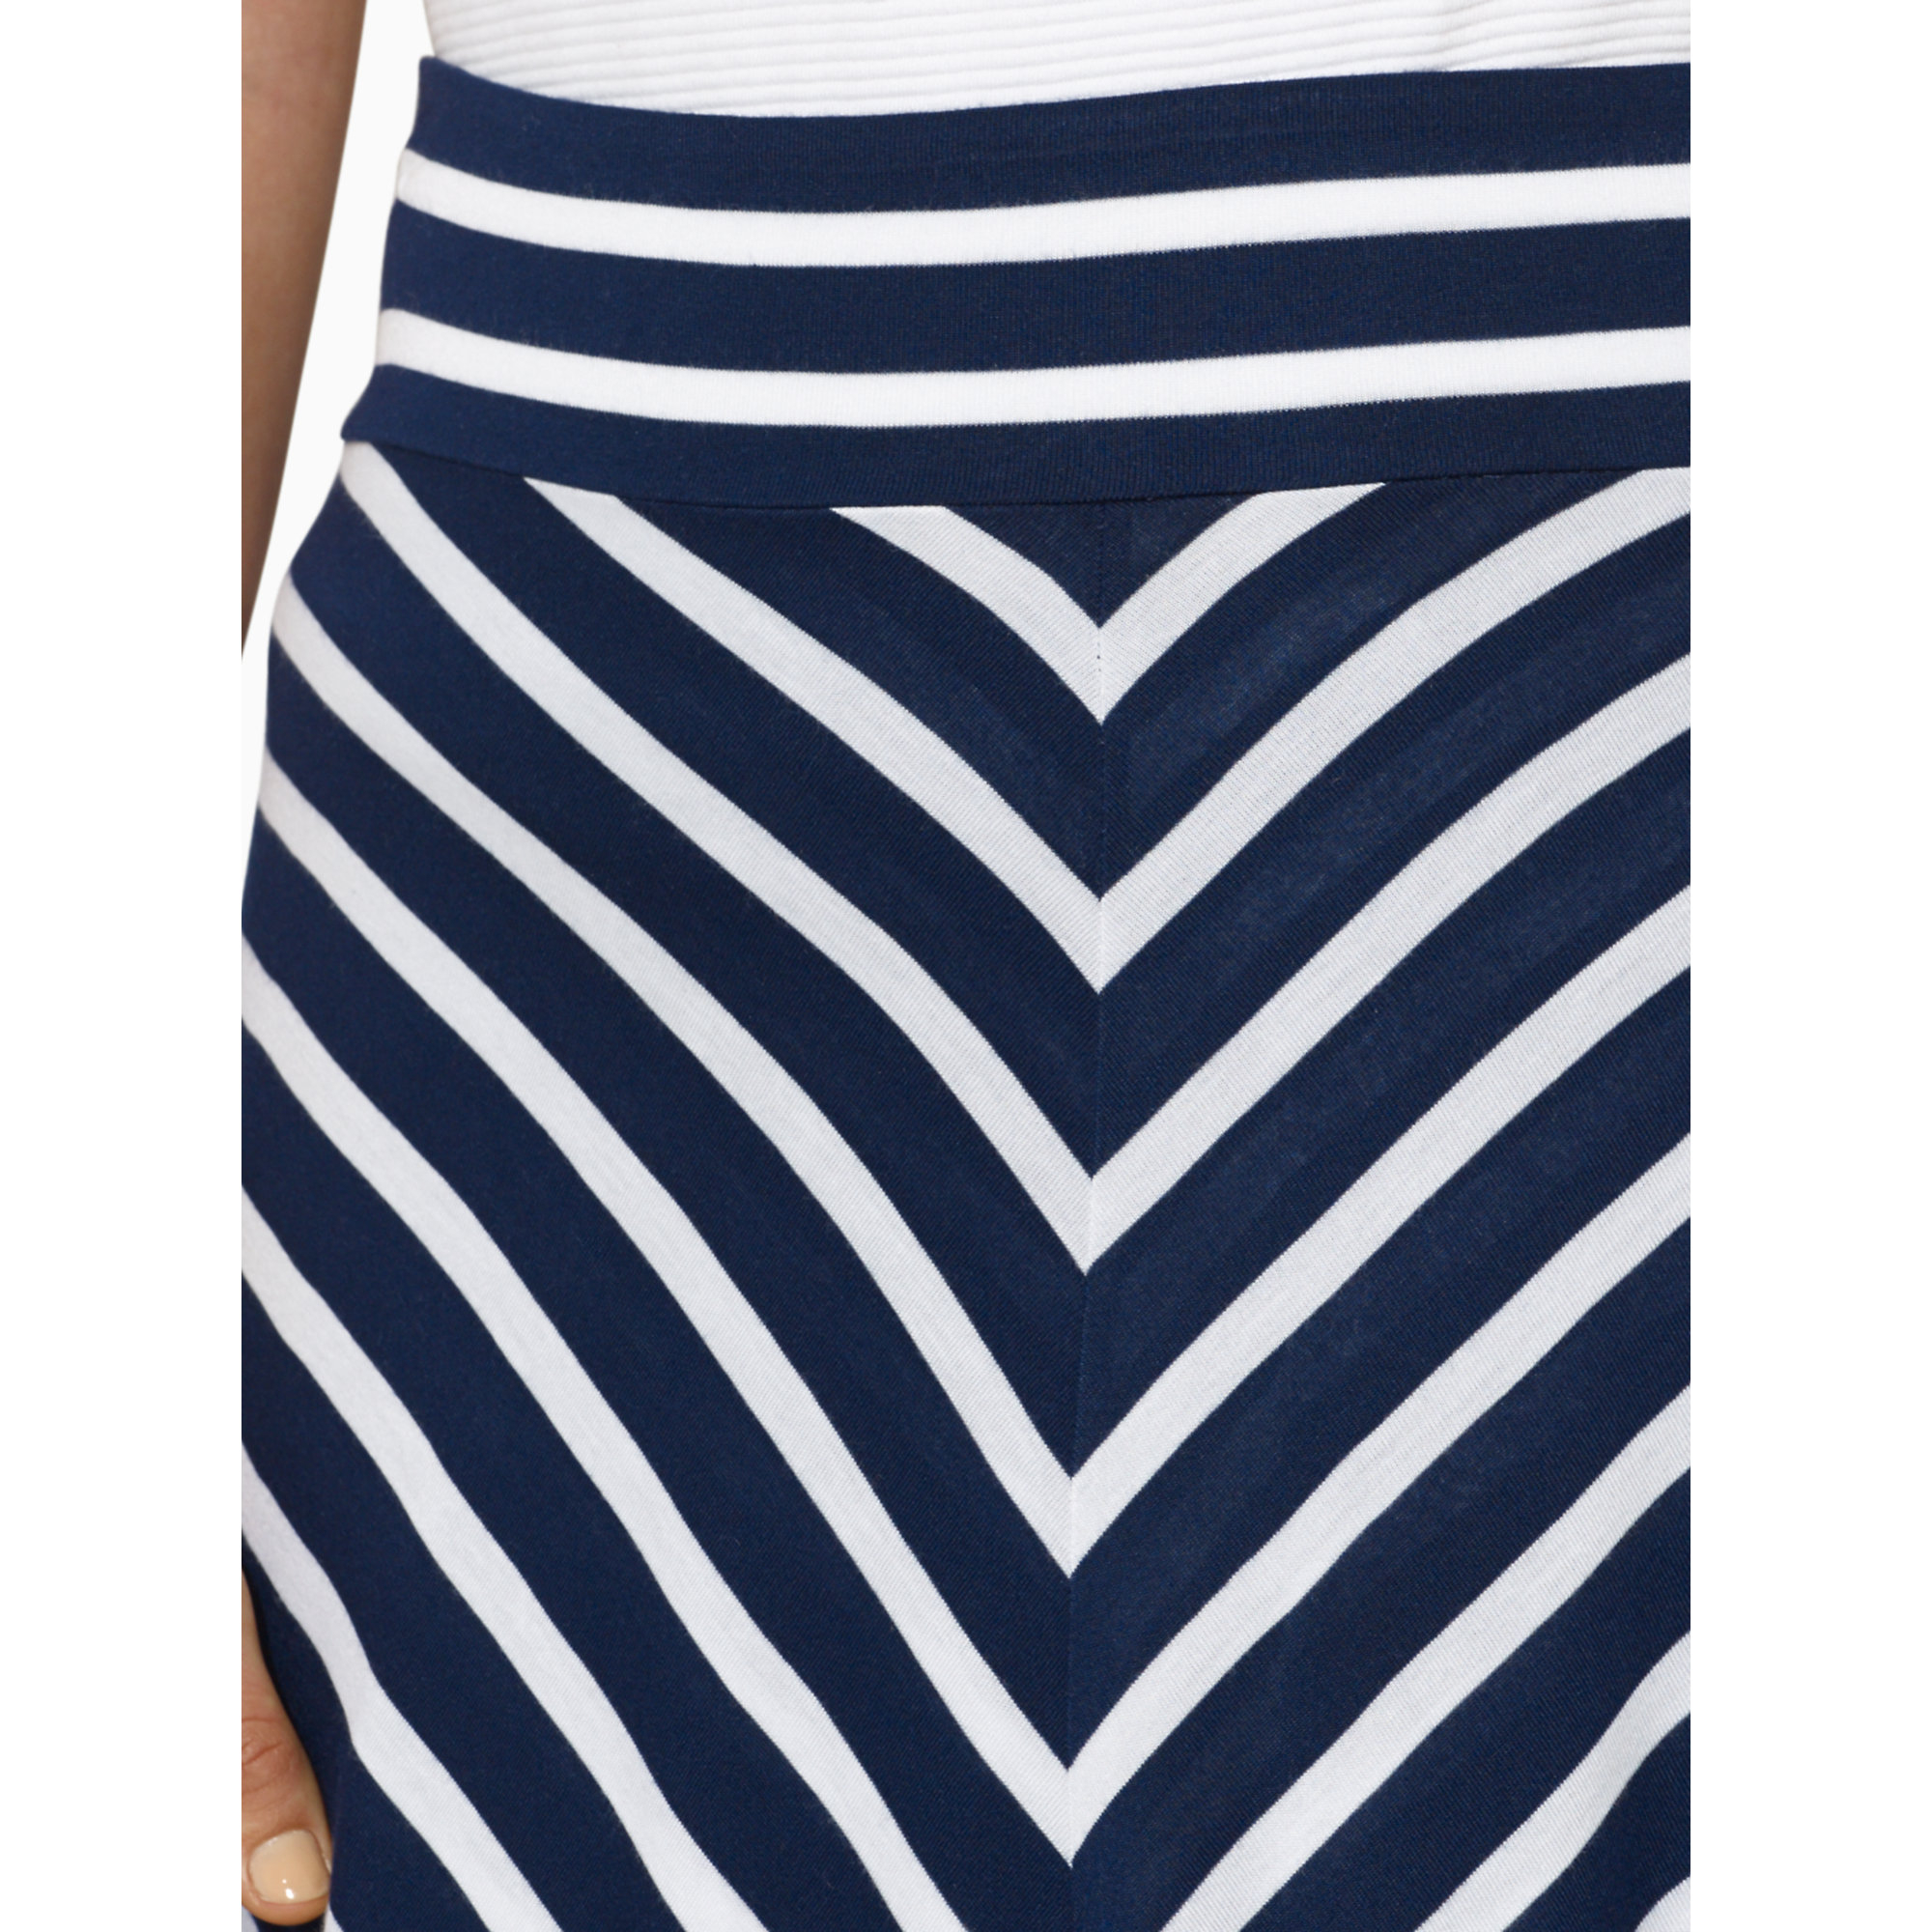 ralph striped jersey skirt in blue san remo navy